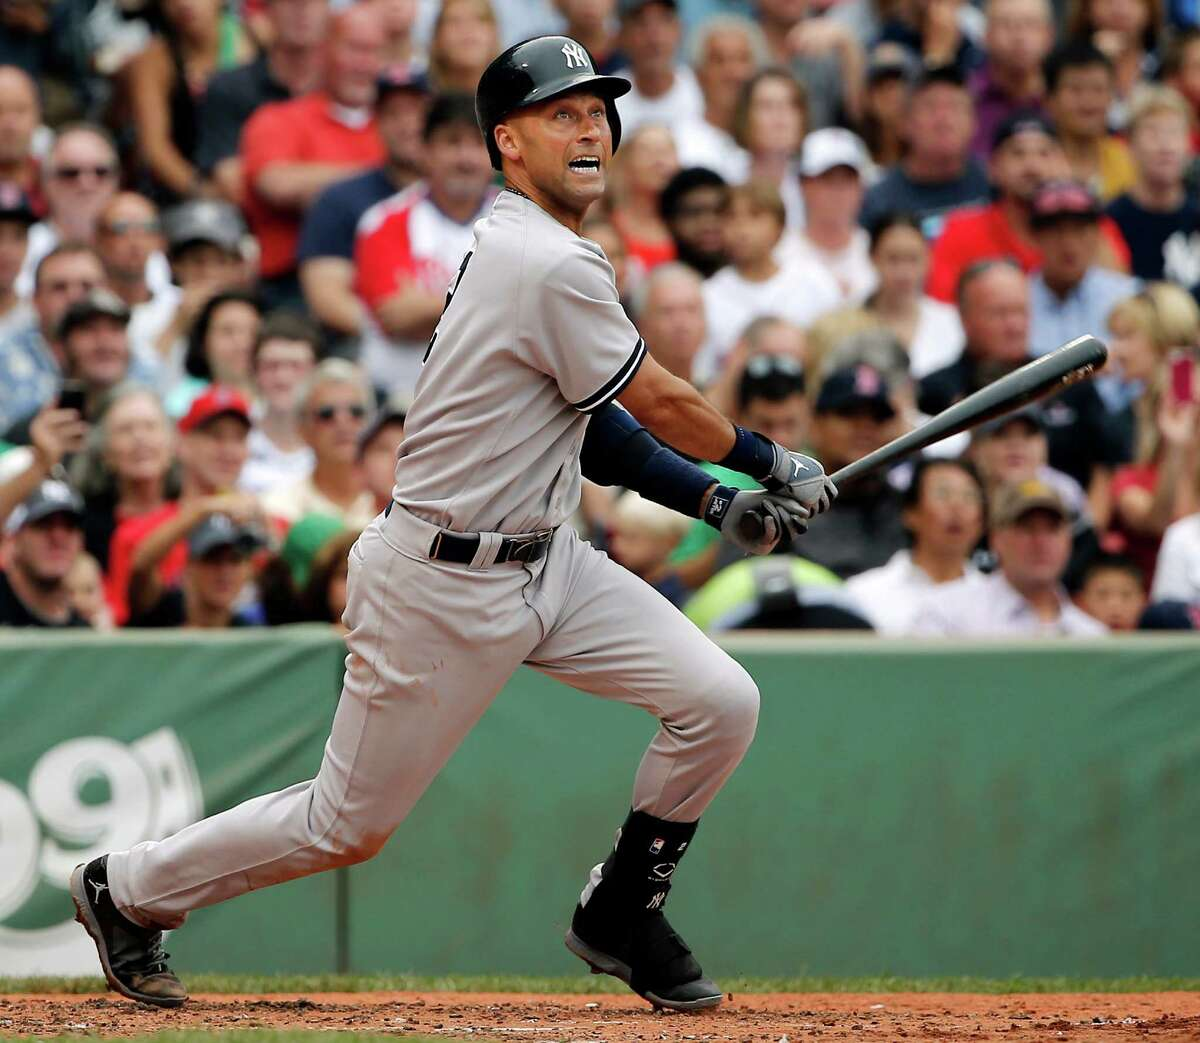 New York Yankees' Derek Jeter watches his two-run double against the Boston Red Sox during the third inning of a baseball game at Fenway Park in Boston Saturday, Aug. 2, 2014. (AP Photo/Winslow Townson) ORG XMIT: BXF108